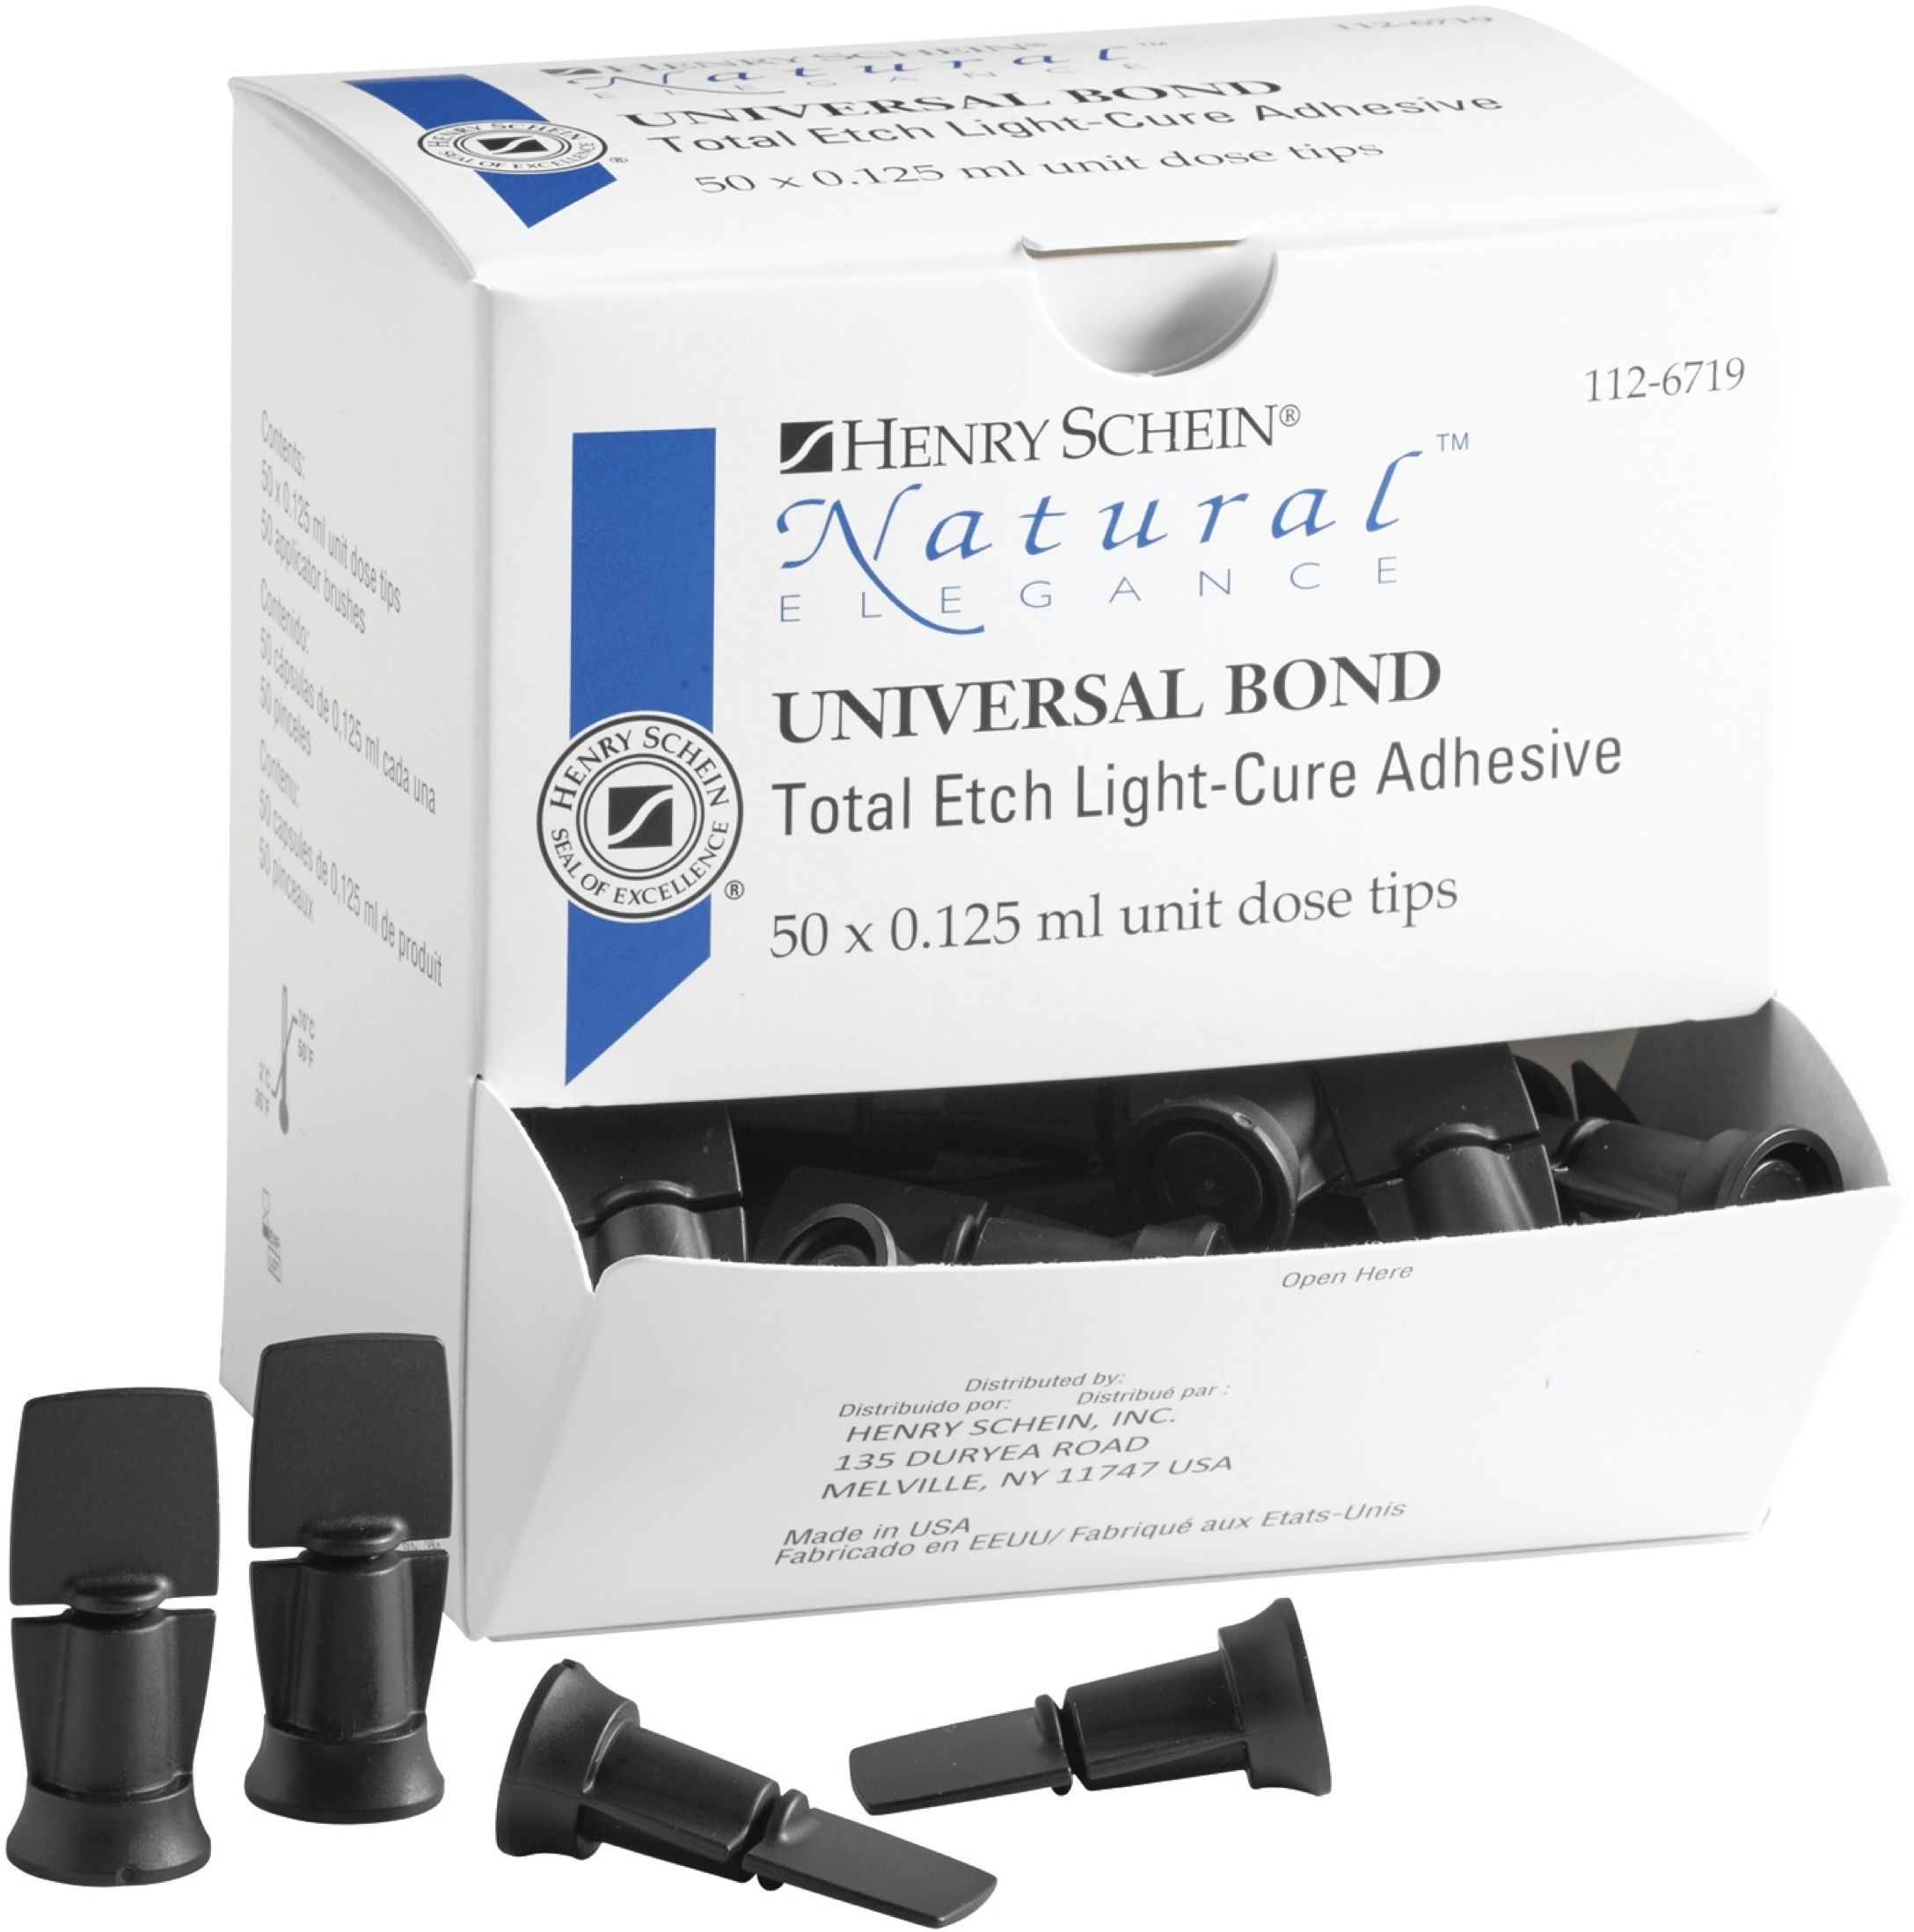 Natural Elegance Universal Bond